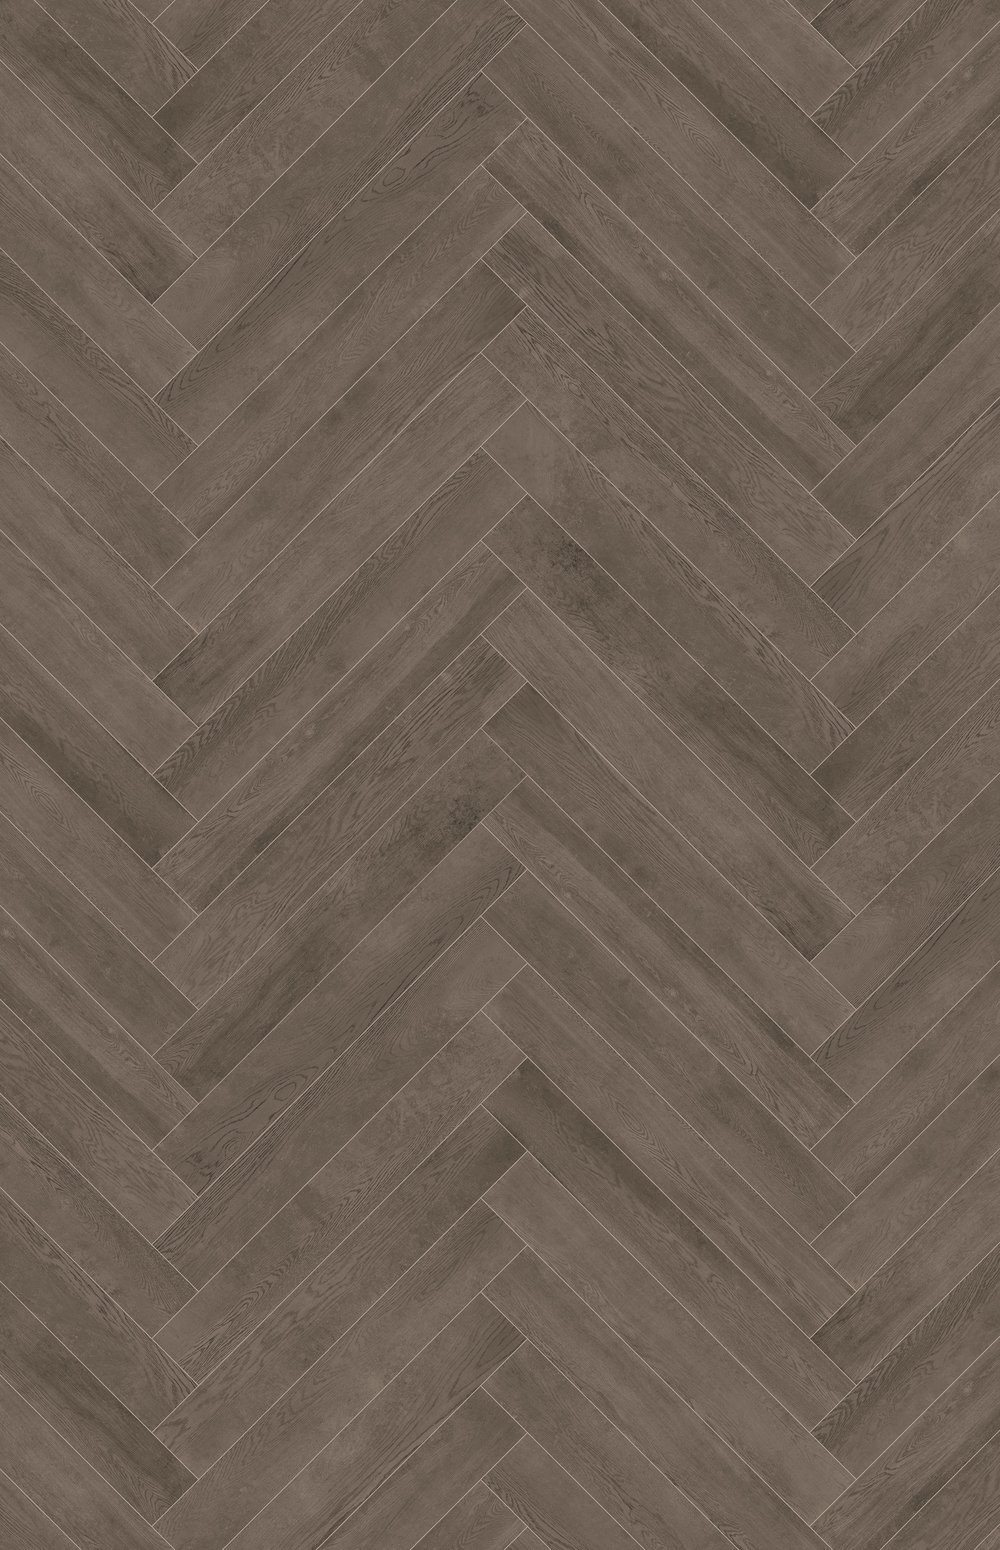 Duet WARM herringbone